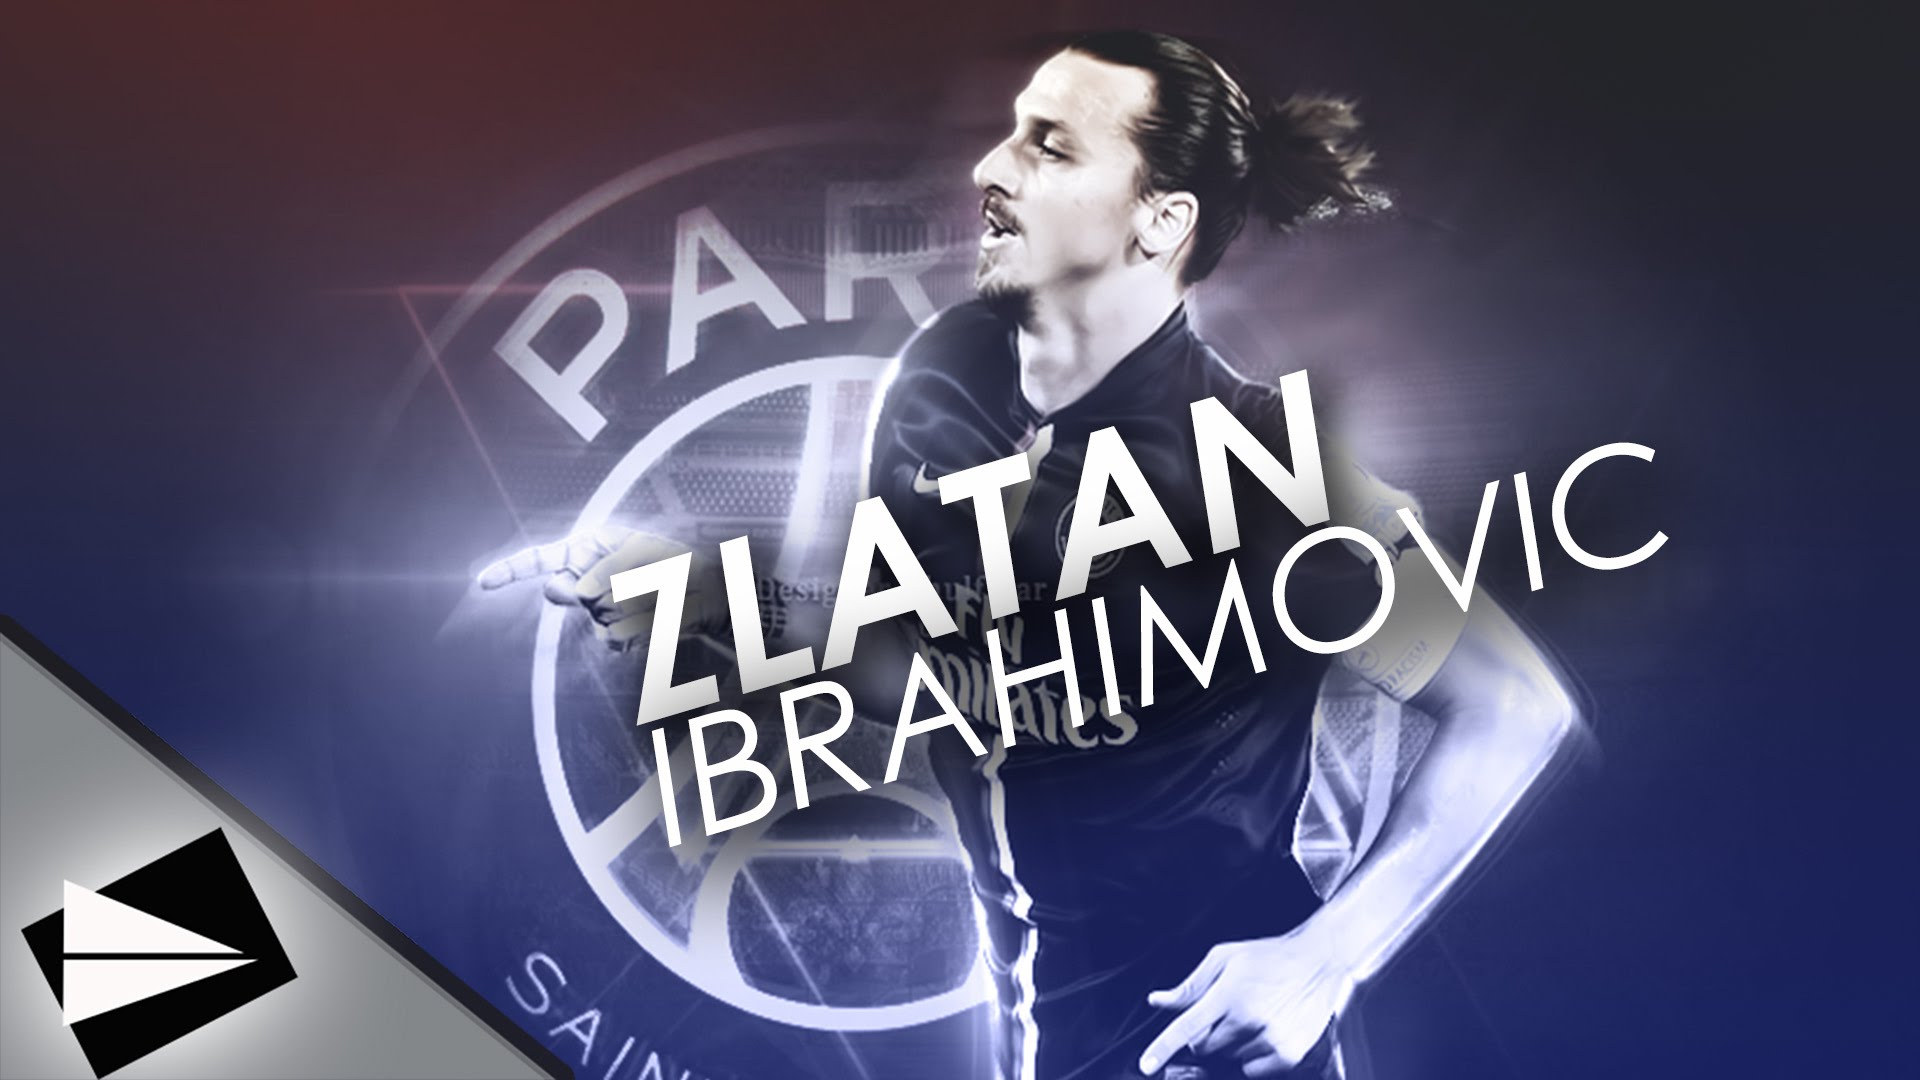 Zlatan ibrahimovic wallpapers pictures images zlatan ibrahimovic full hd wallpaper 1920x1080 voltagebd Gallery